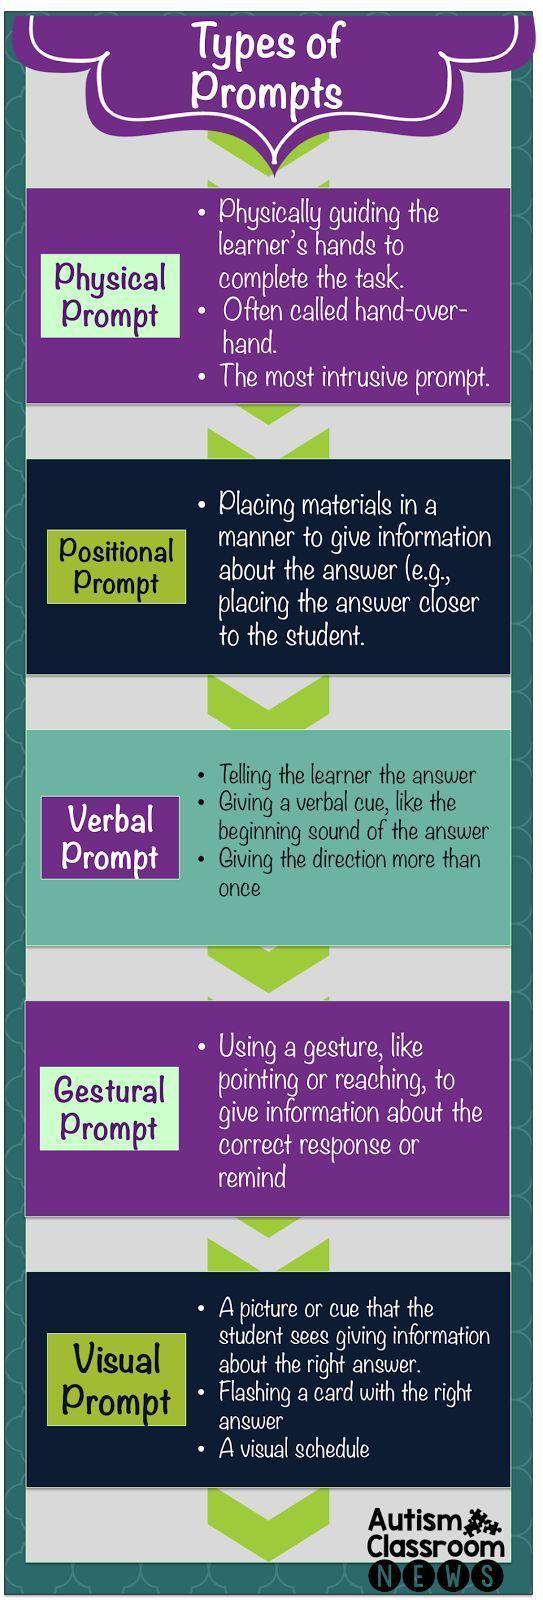 Autism Classroom News5 Main Types of Prompts: An Infographic. For related pins and resources follow https://www.pinterest.com/angelajuvic/autism-special-needs/